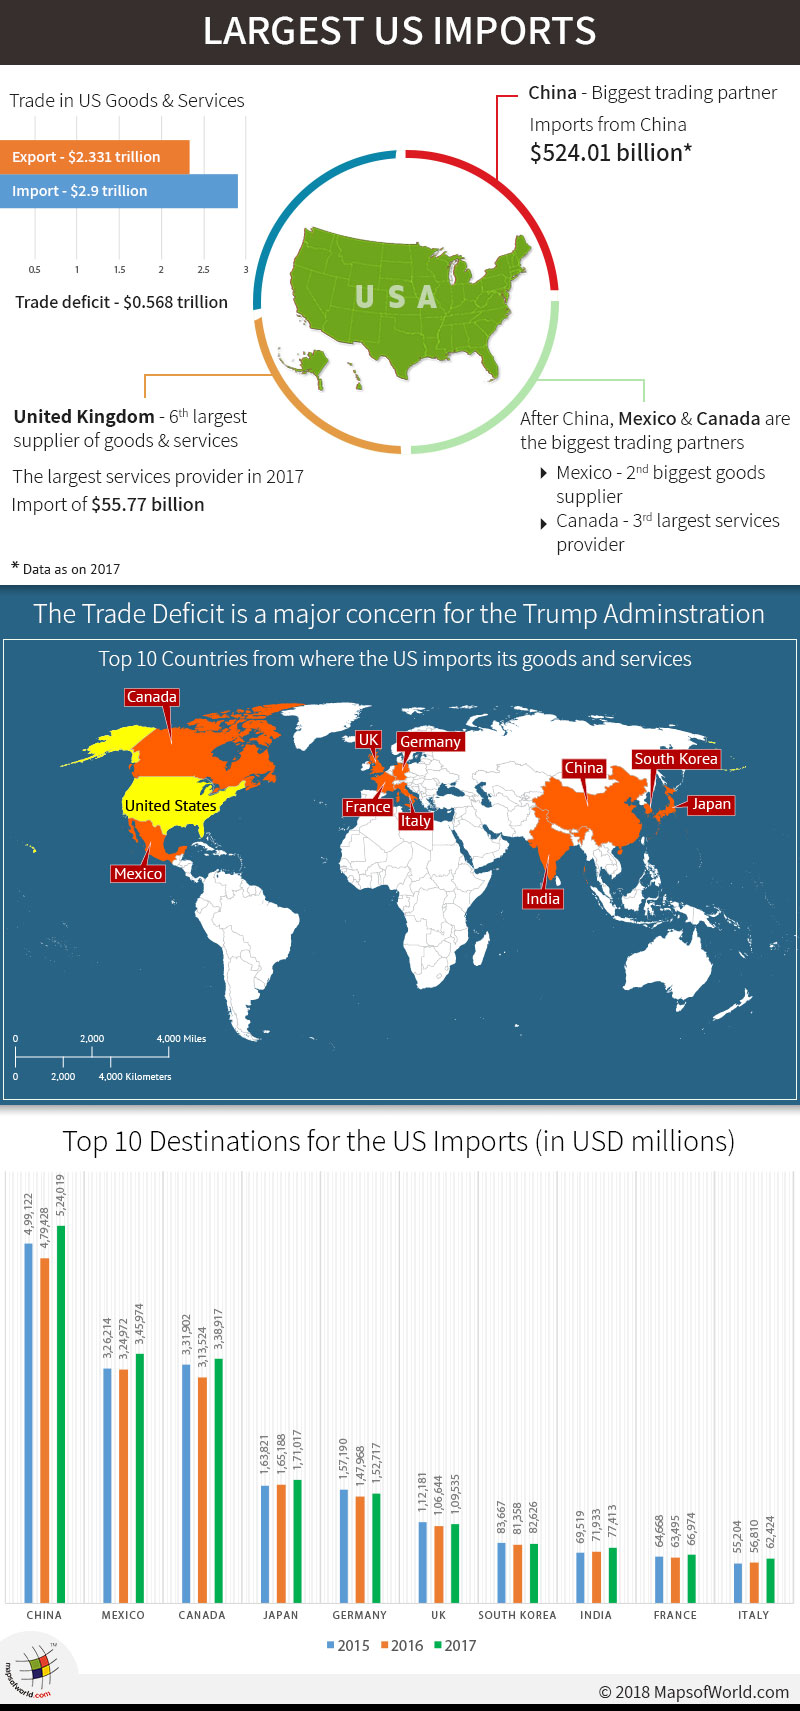 China has been the best US importer